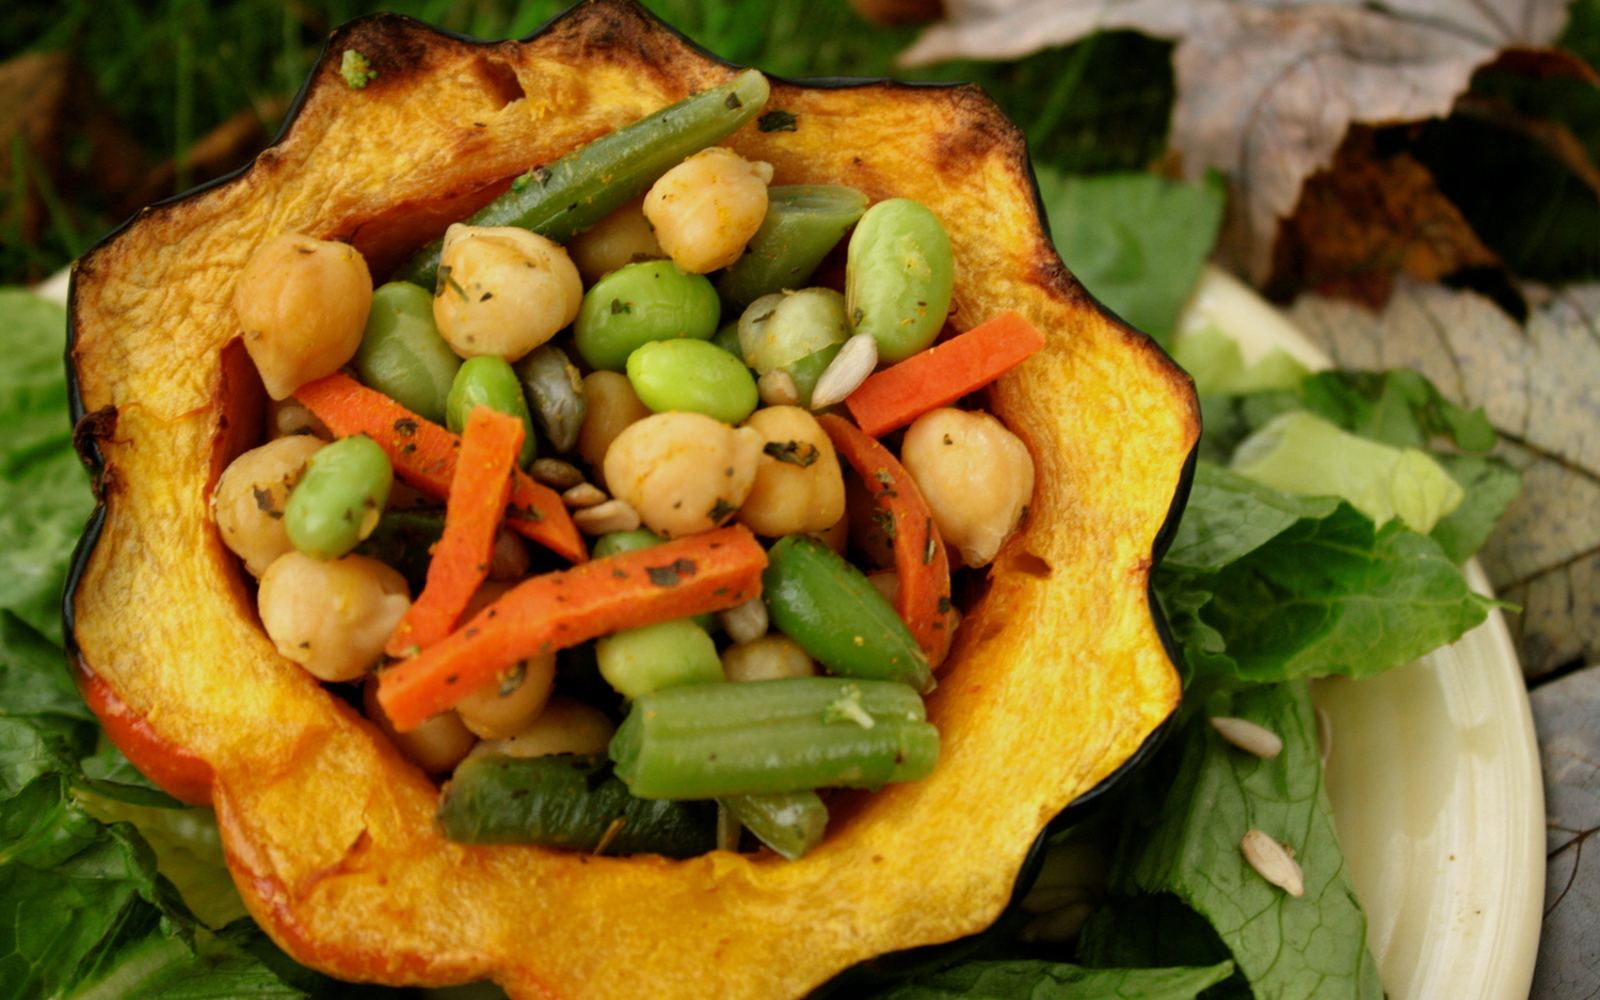 Vegan Roasted Acorn Squash With Curried Chickpea and Veggies